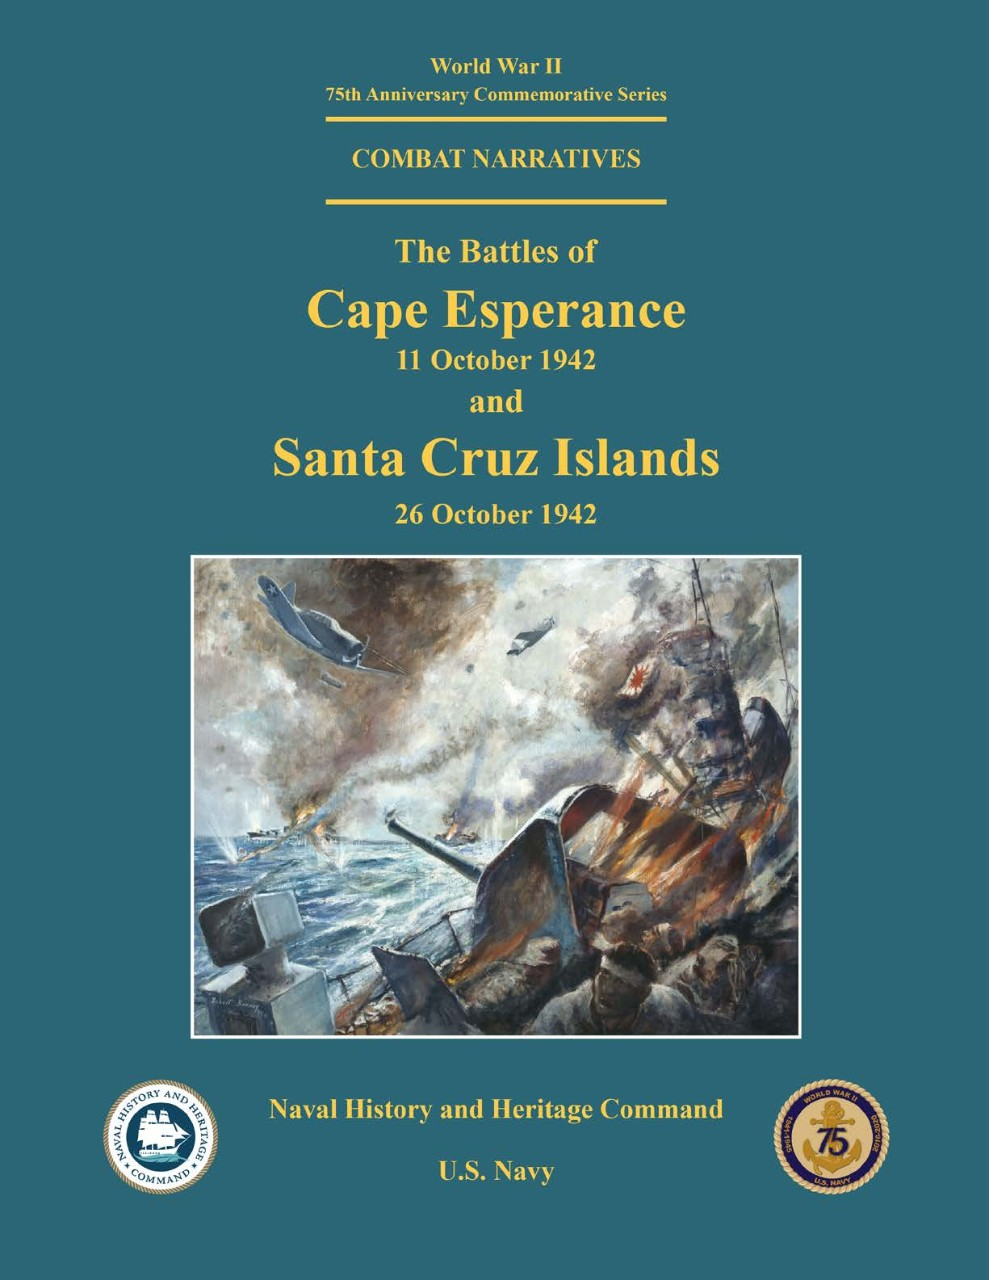 Islands, 26 October 1942 V Battle of Santa Cruz